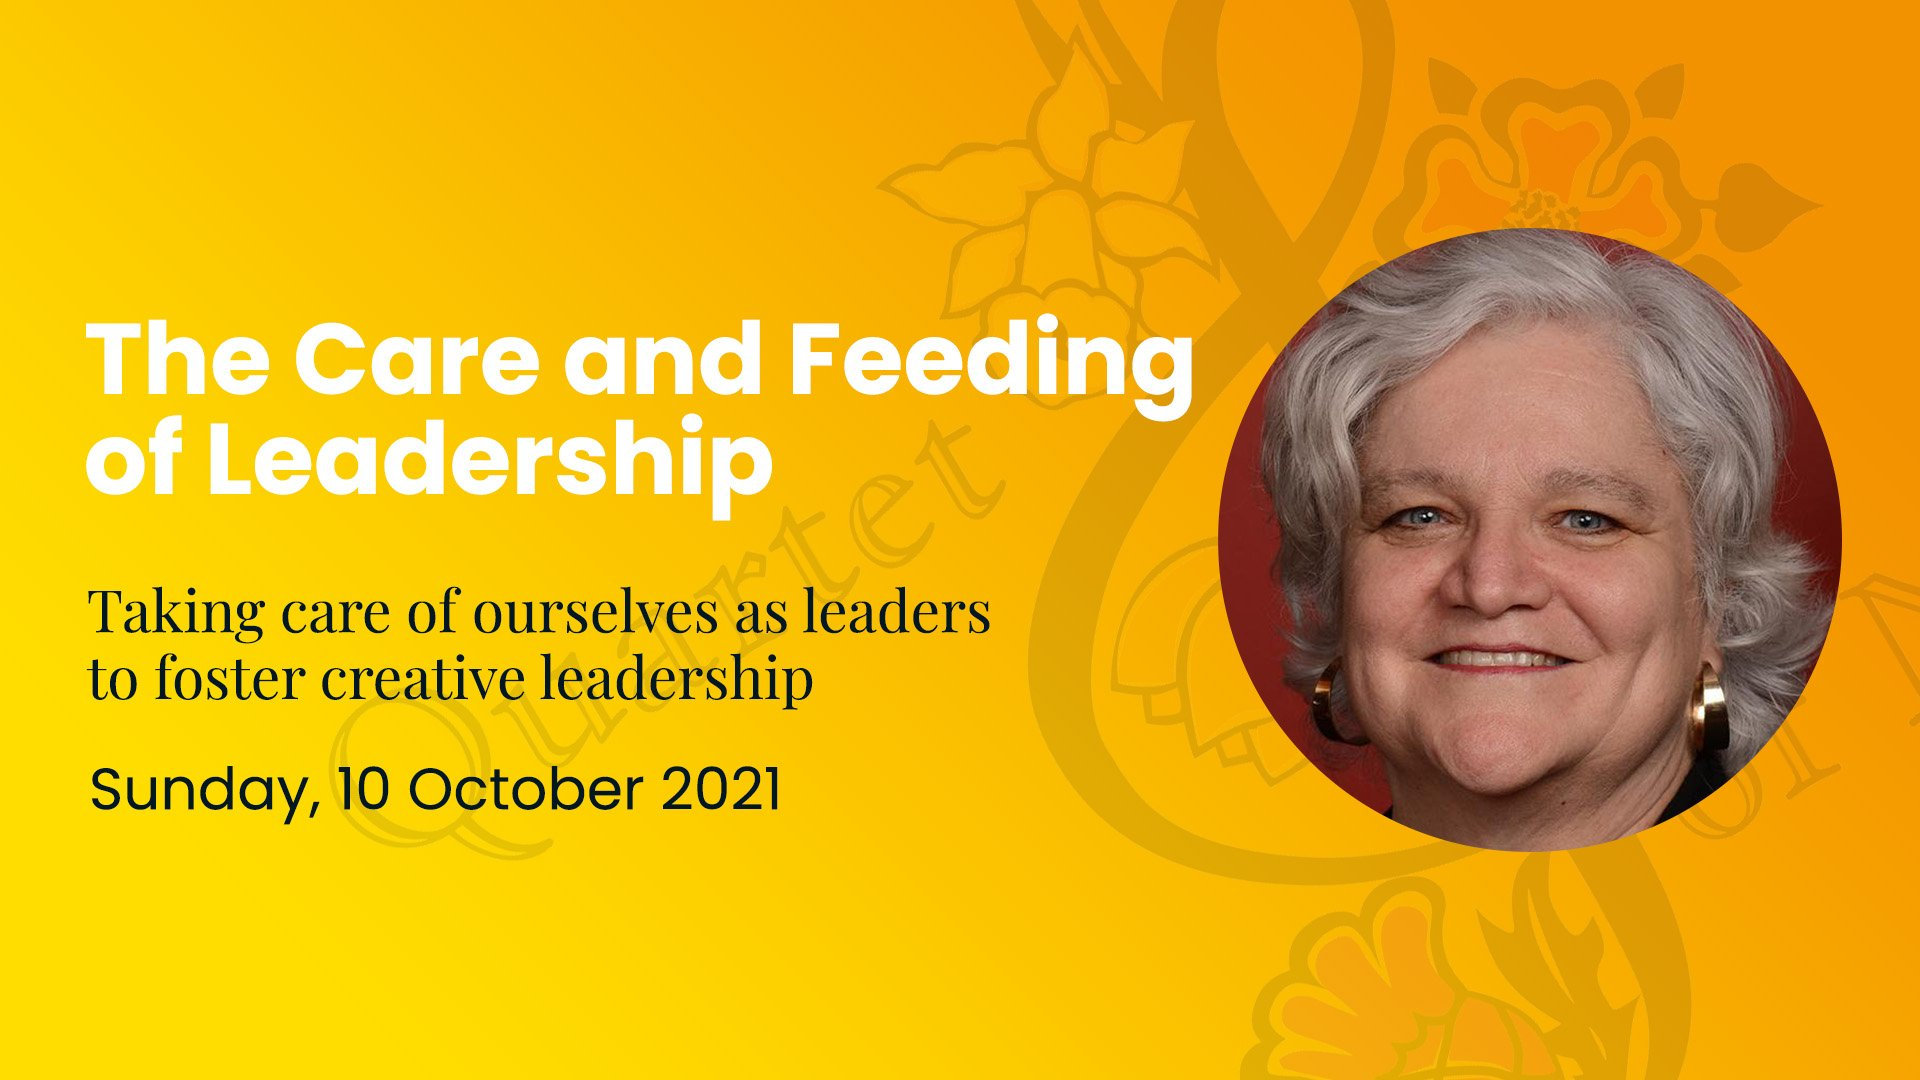 The Care and Feeding of Leadership